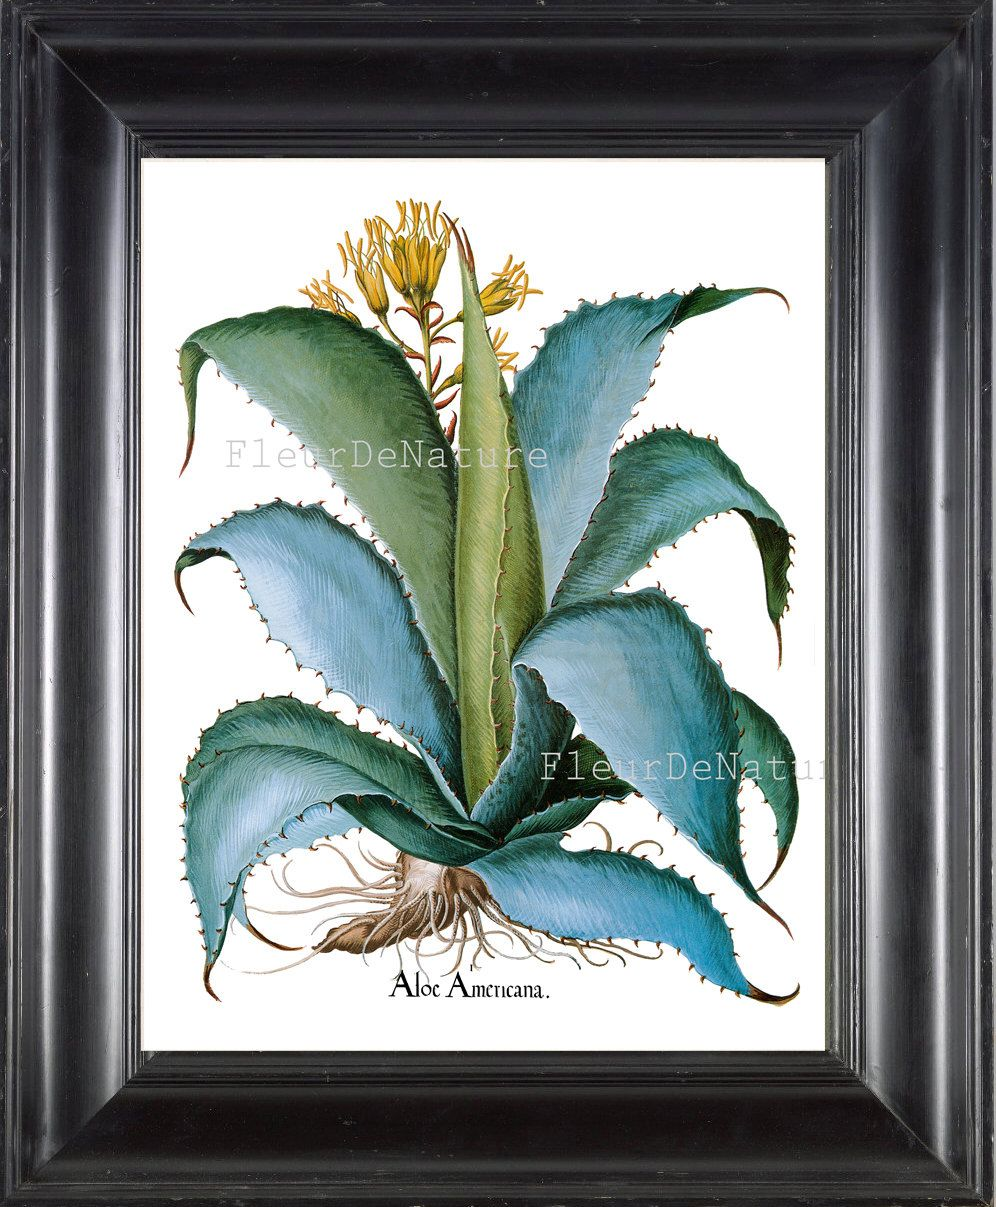 Biais impression botanique 8 x 10 botanique Art Print 80 Aloe grand belle plante fleur bleue écriture Antique Tropical Nature par FleurDeNature sur Etsy https://www.etsy.com/fr/listing/176991352/biais-impression-botanique-8-x-10